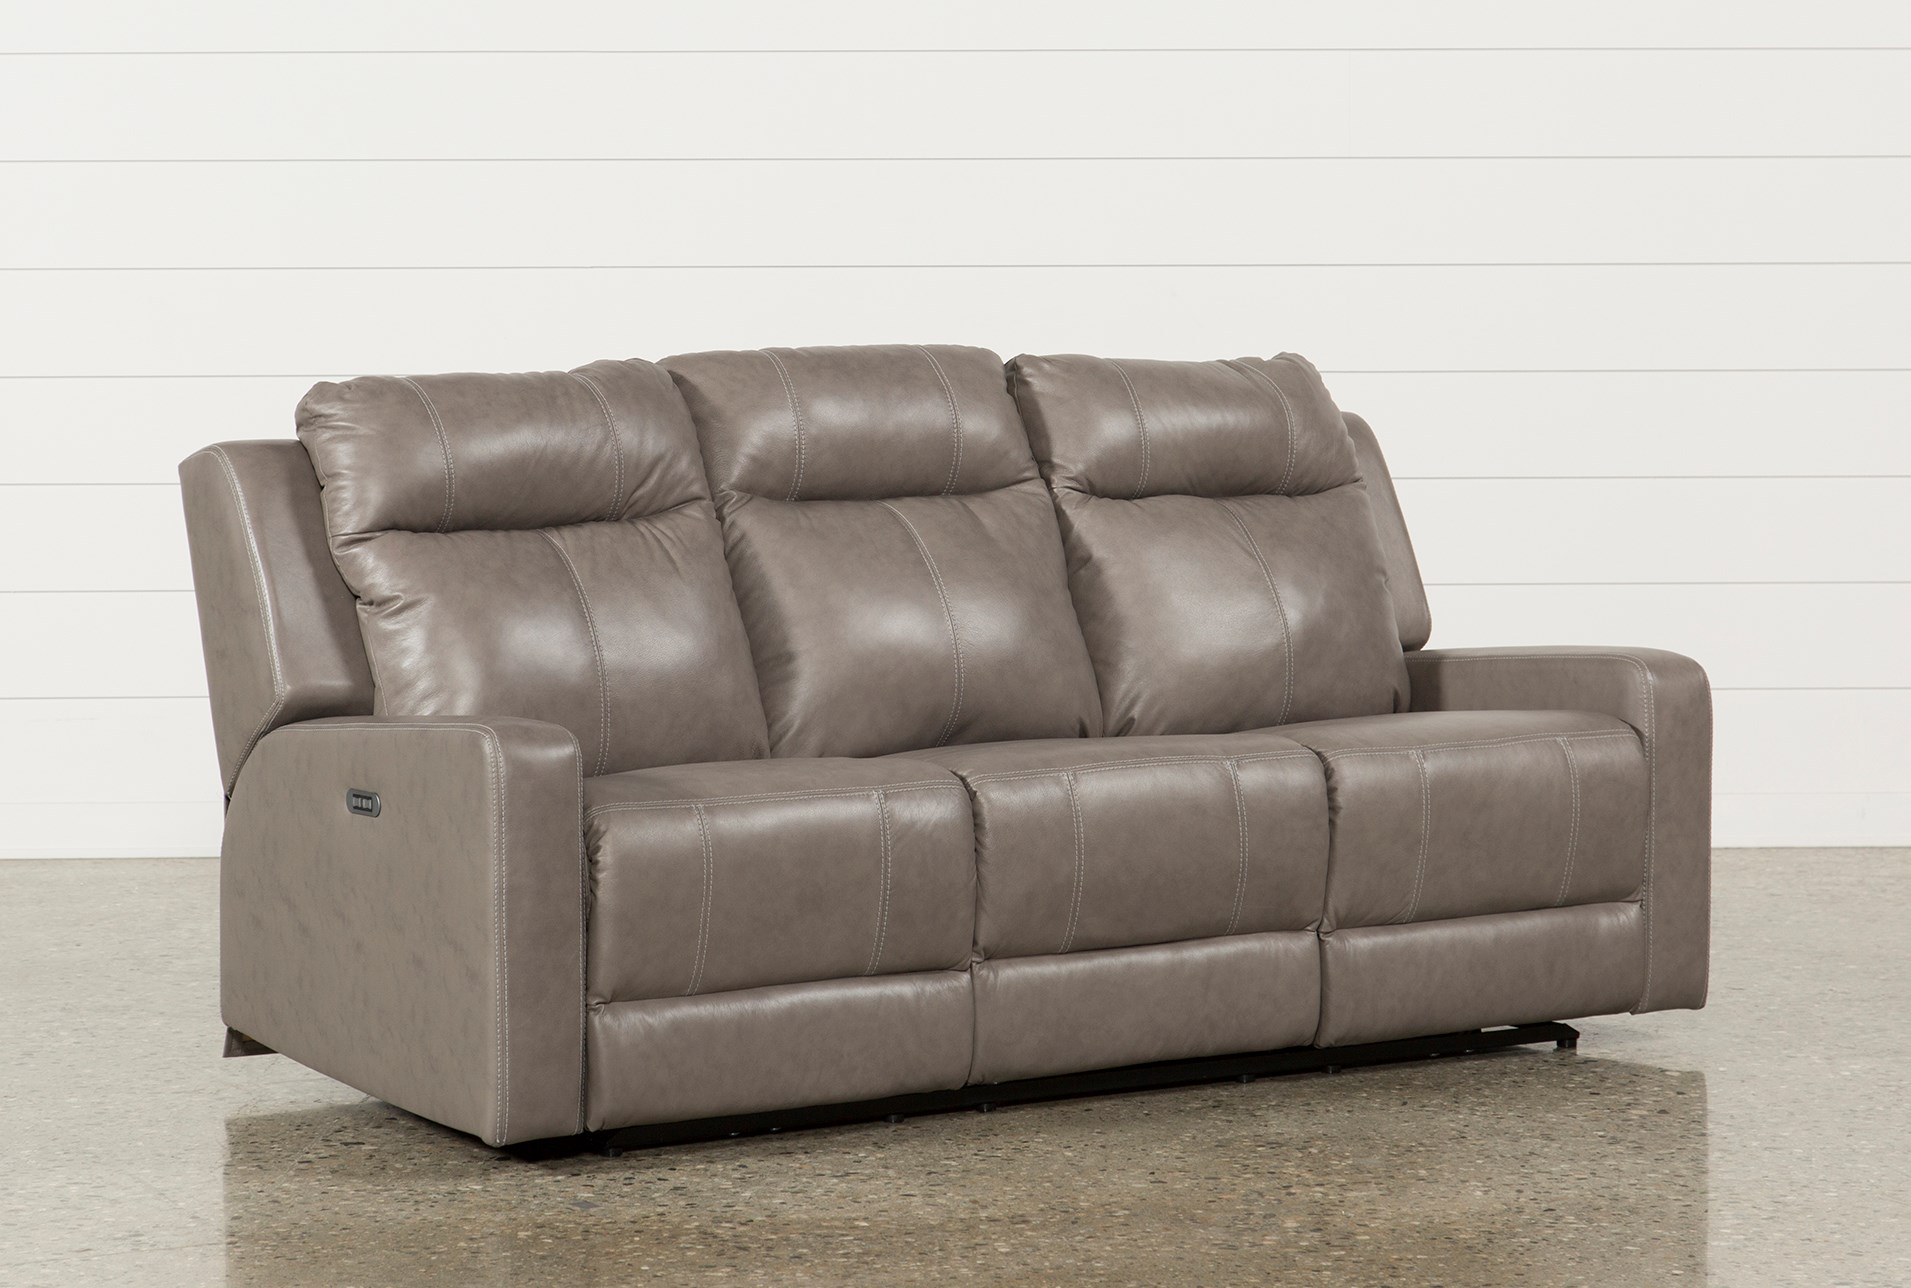 Sequoia Sable Leather Dual Power Reclining Sofa W Adjustable